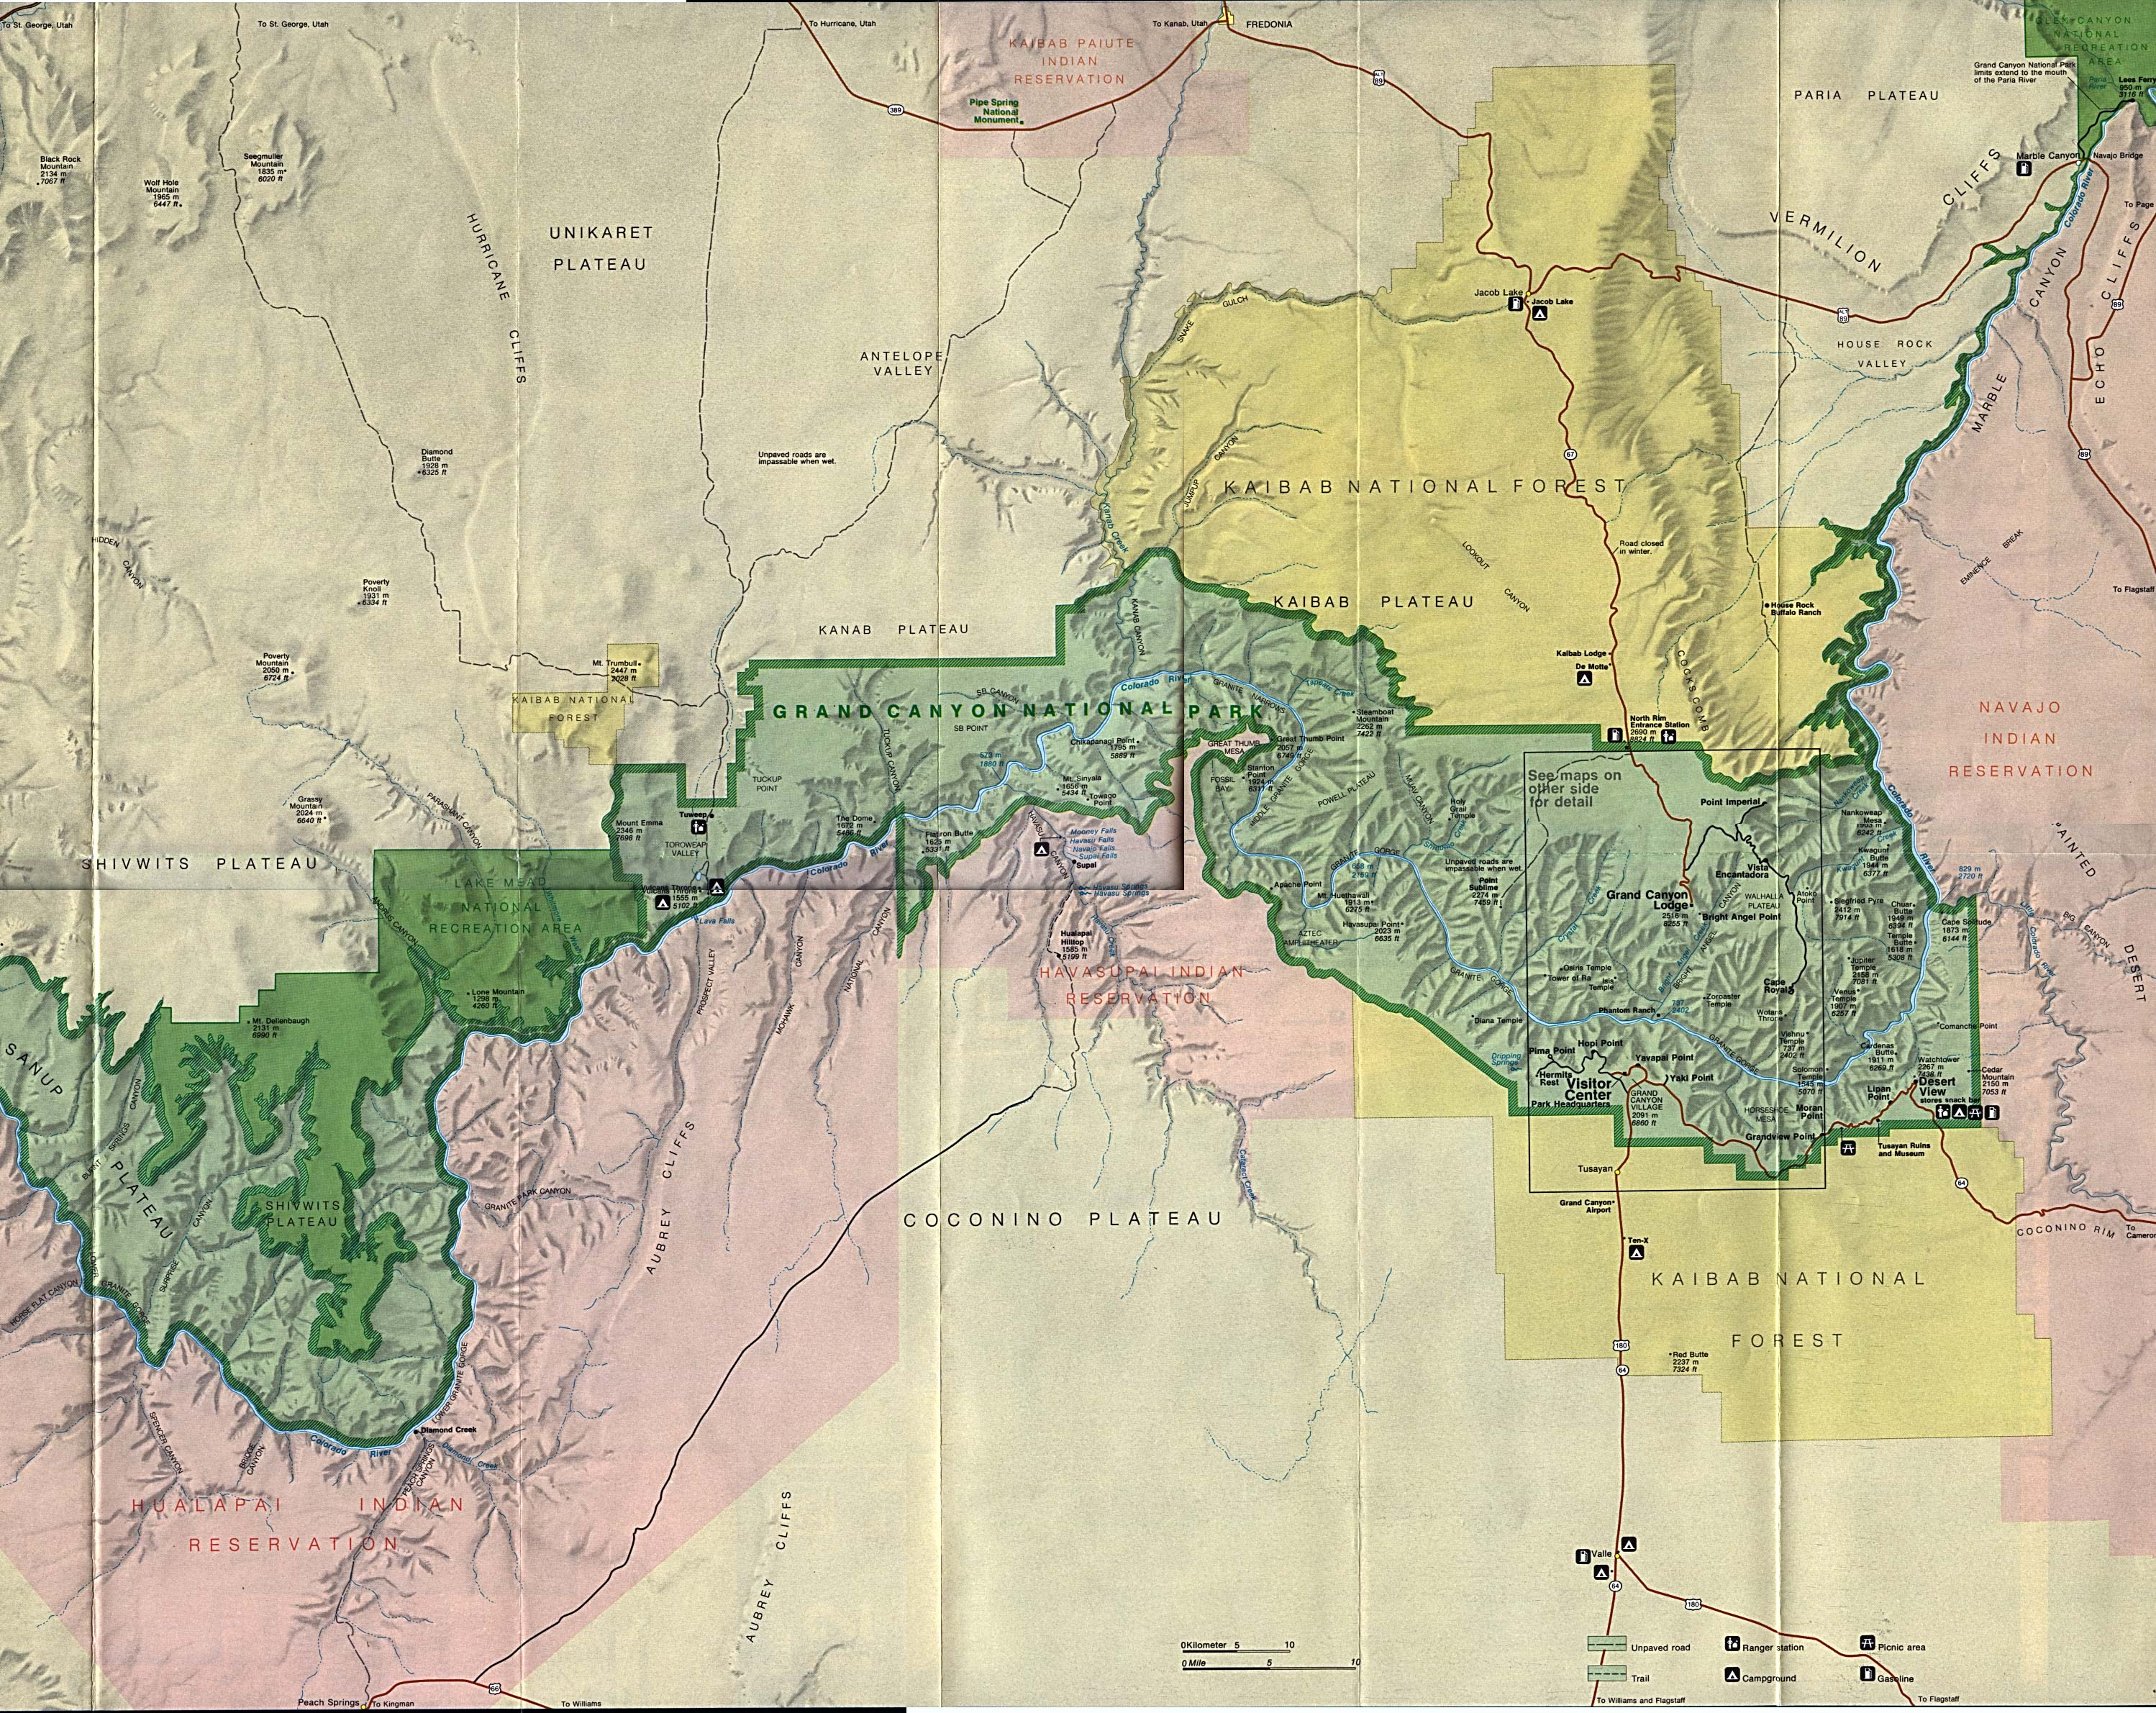 Mapa de Relieve Sombreado de la Región Occidental del Parque Nacionall Gran Cañón, Arizona, Estados Unidos